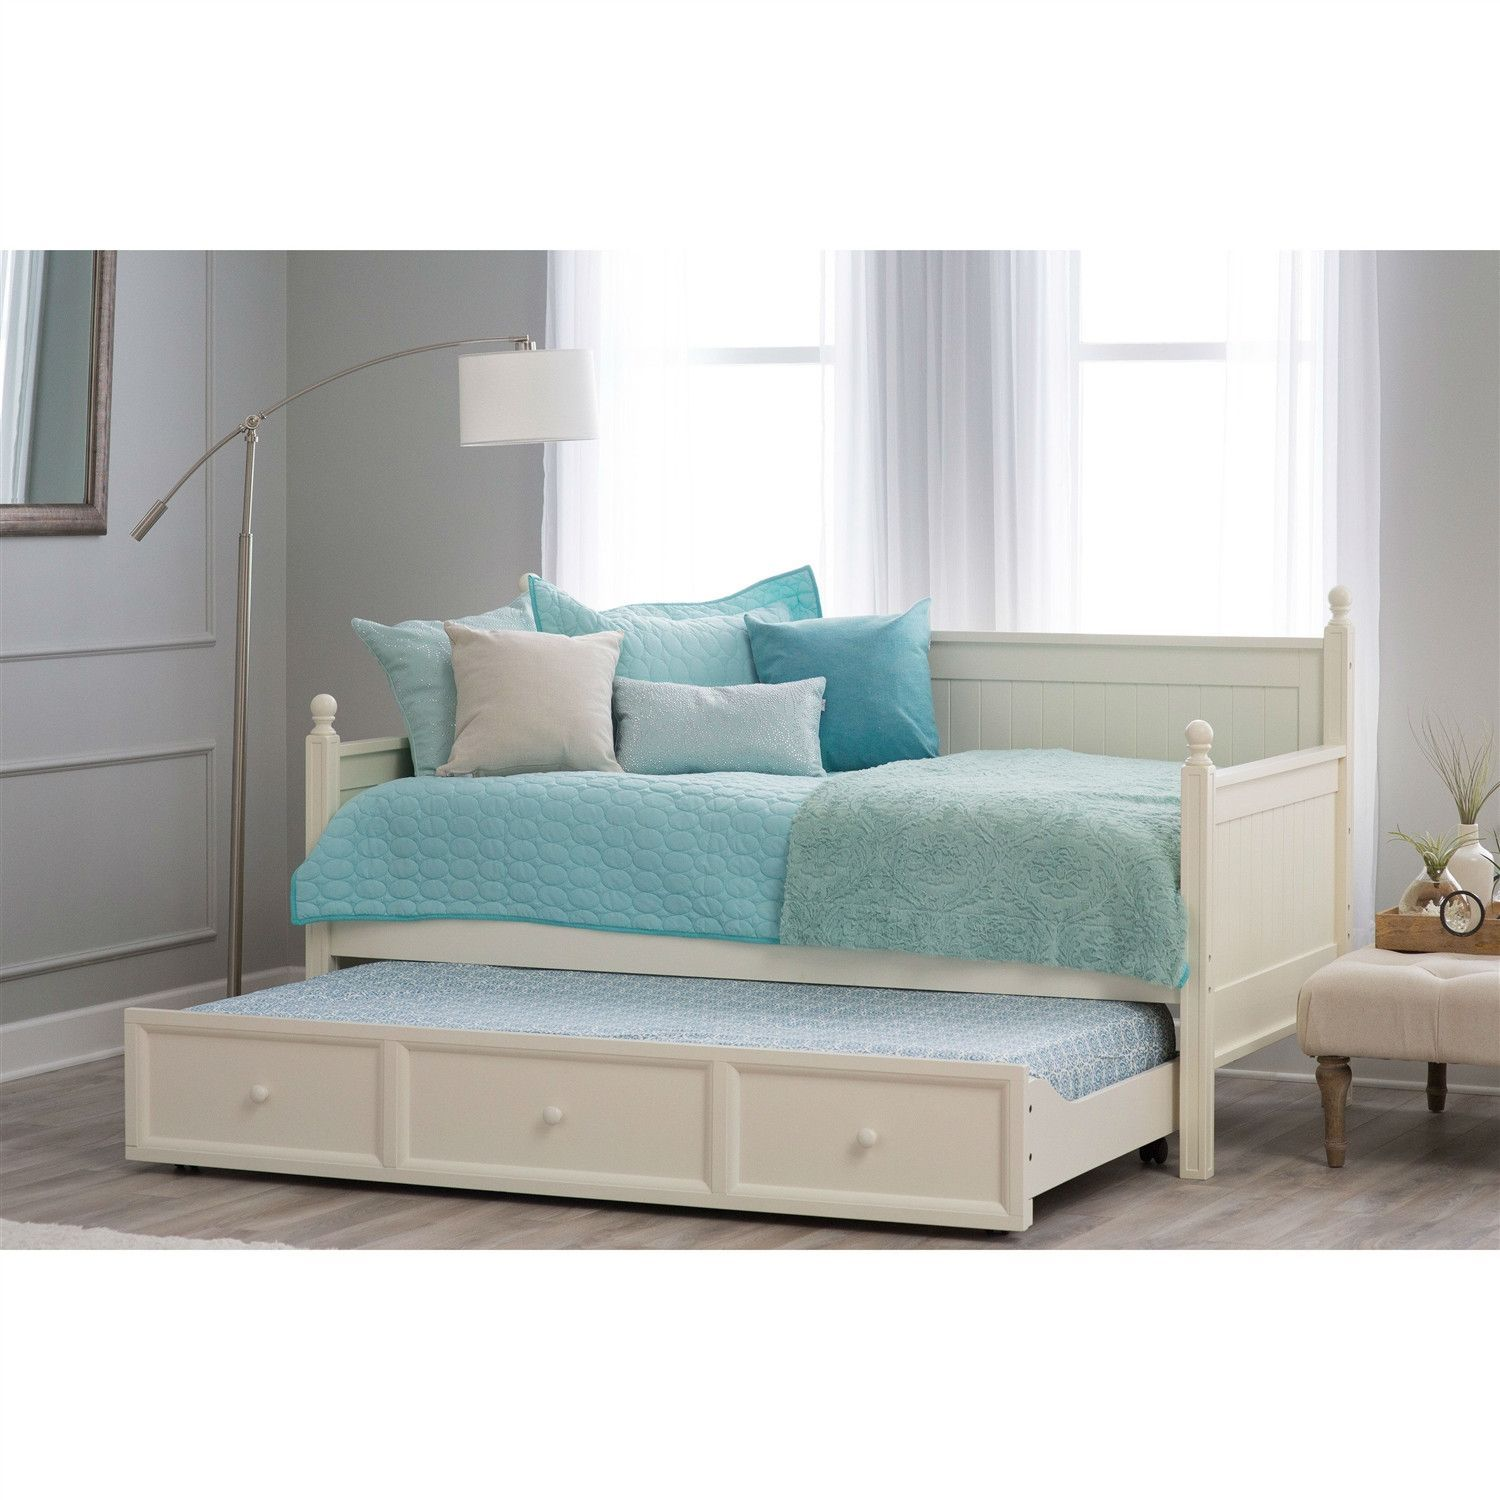 Twin Size White Wood Daybed With Pull Out Trundle Bed White Wood